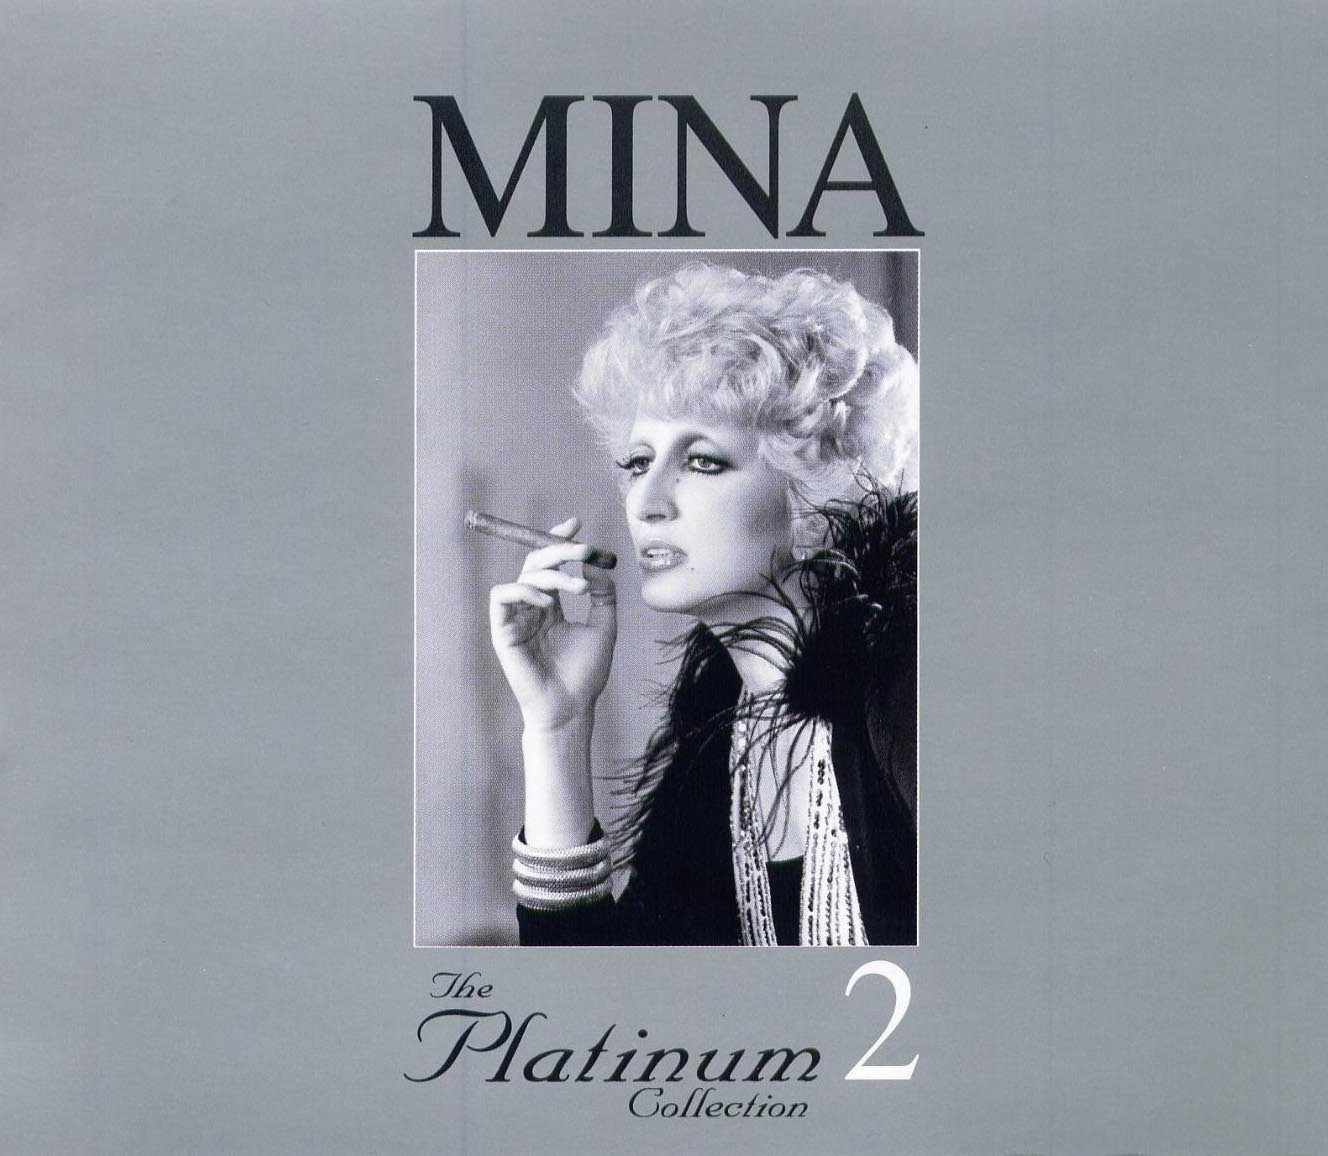 35_2006_Mina__The_Platinum_Collection_2